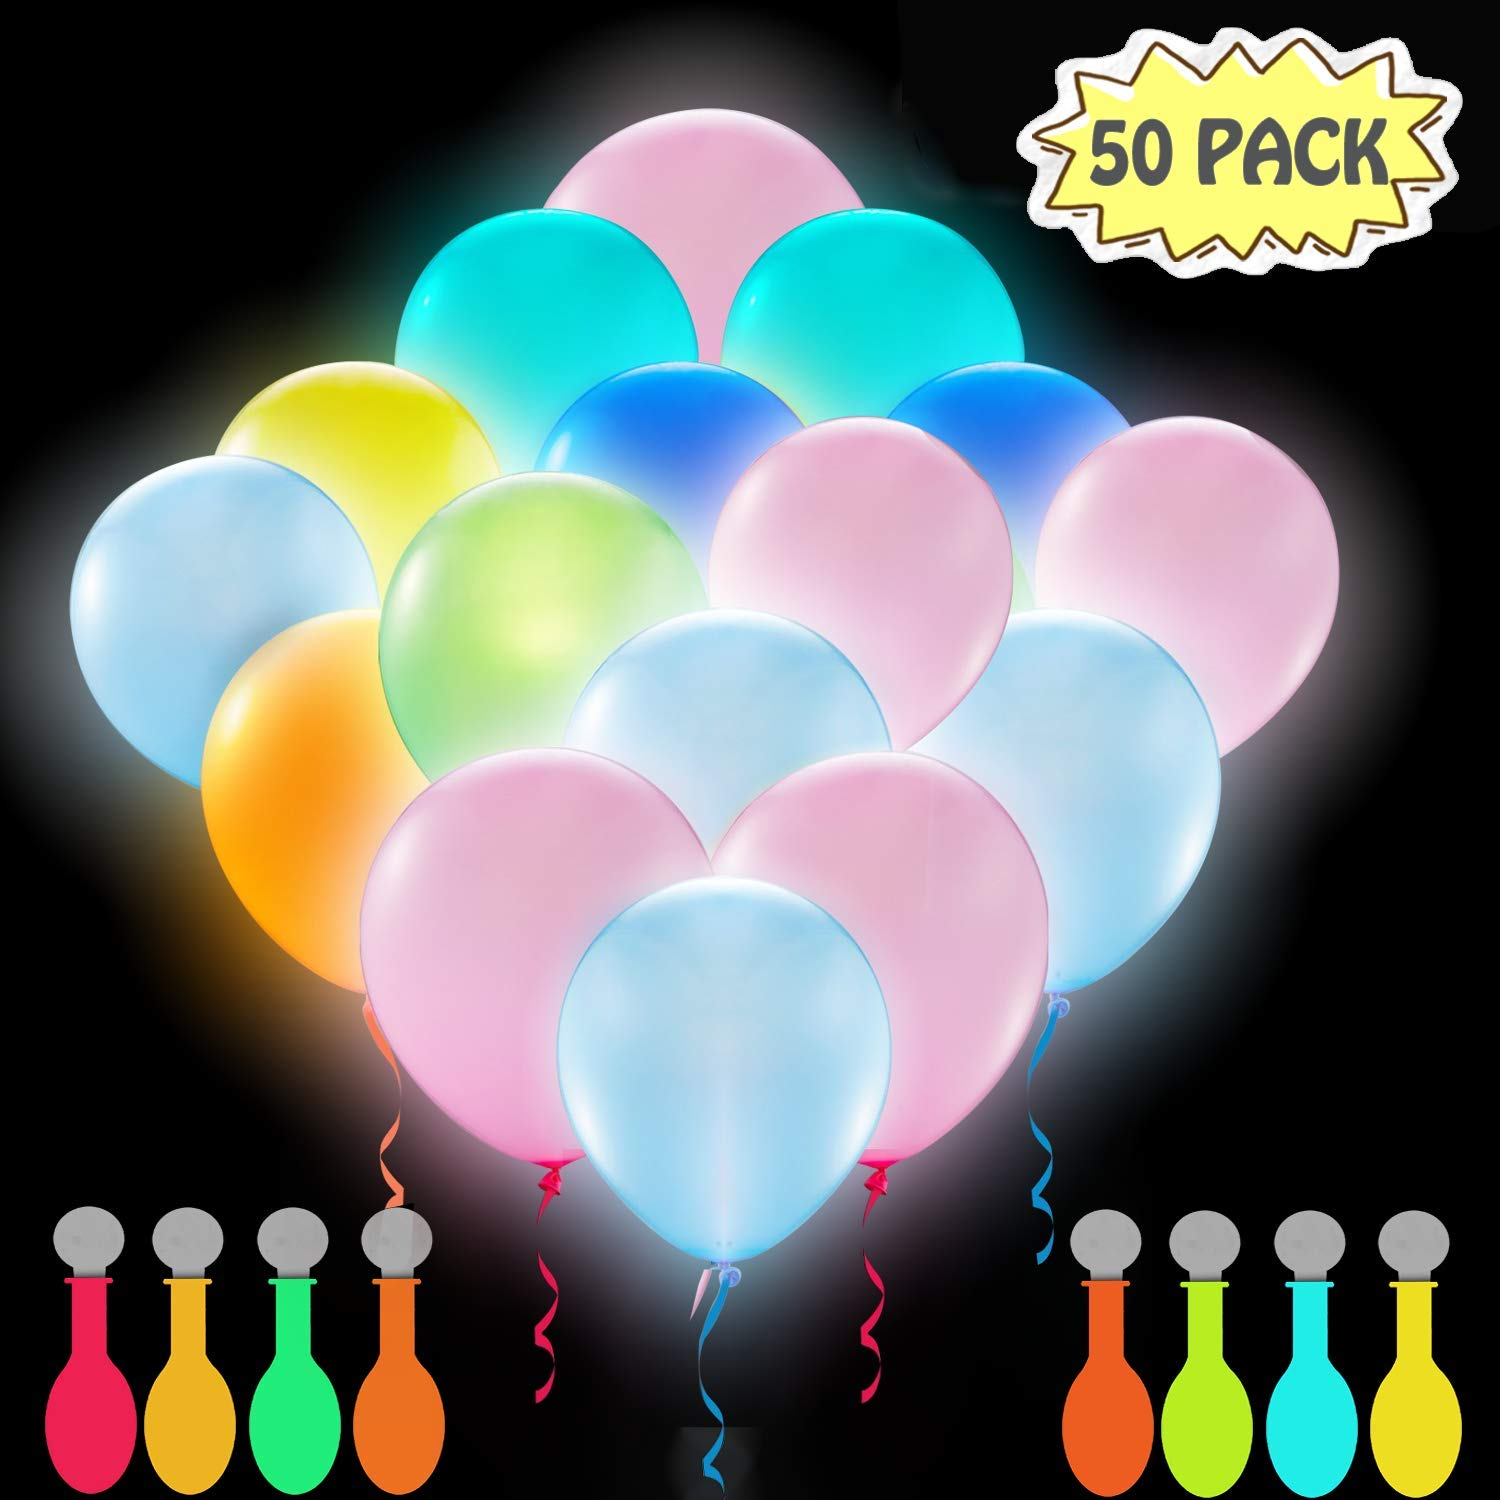 POKONBOY 50 Pack LED Light Up Balloons, Glow in the Dark Party Supplies LED Balloons Neon Party Supplies for Birthday Wedding Festival Easter (Mixed Color) by POKONBOY